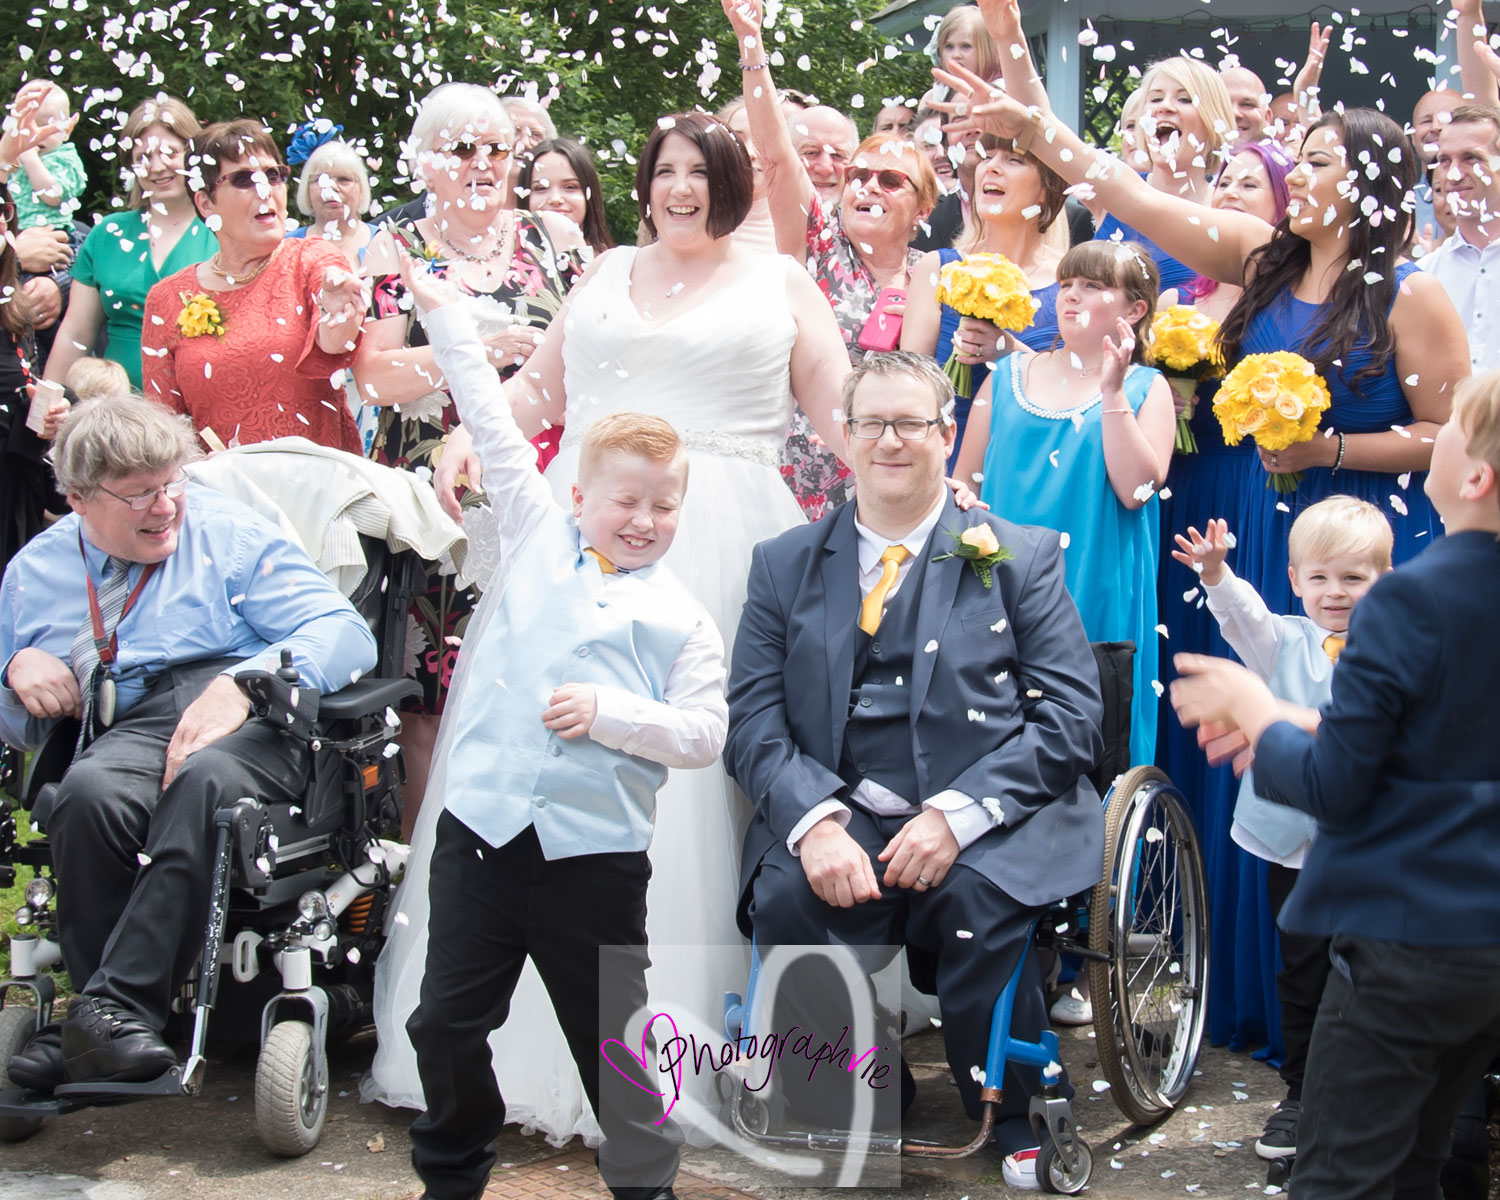 throwing confetti at a wedding in huntingdon marriot hotel children photographer.jpg